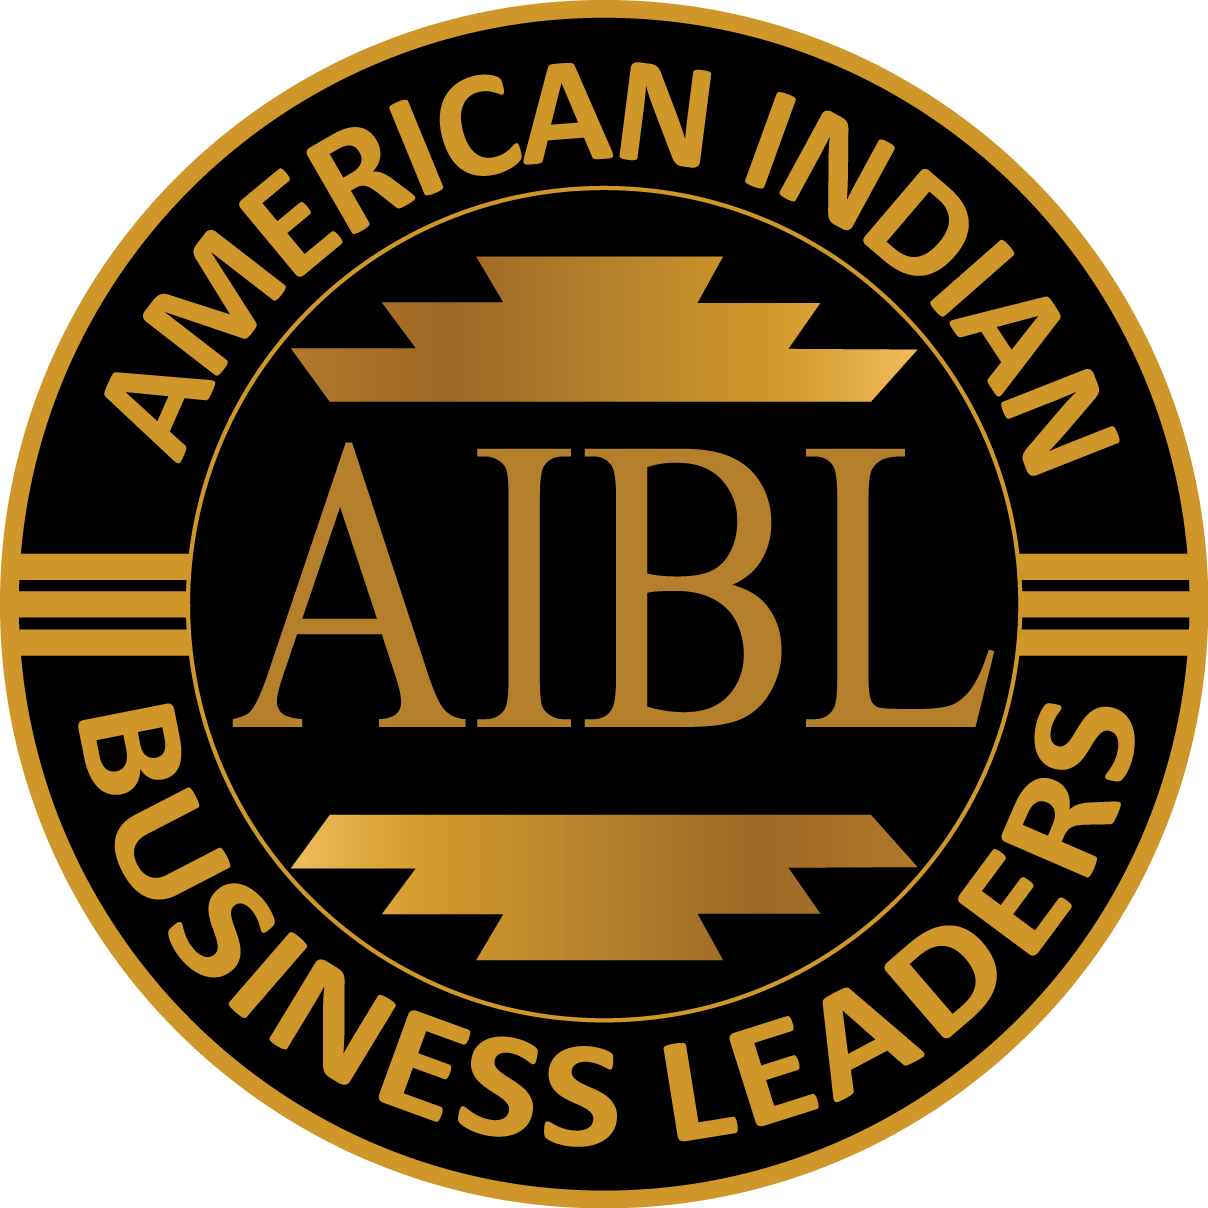 american indian business leaders logo